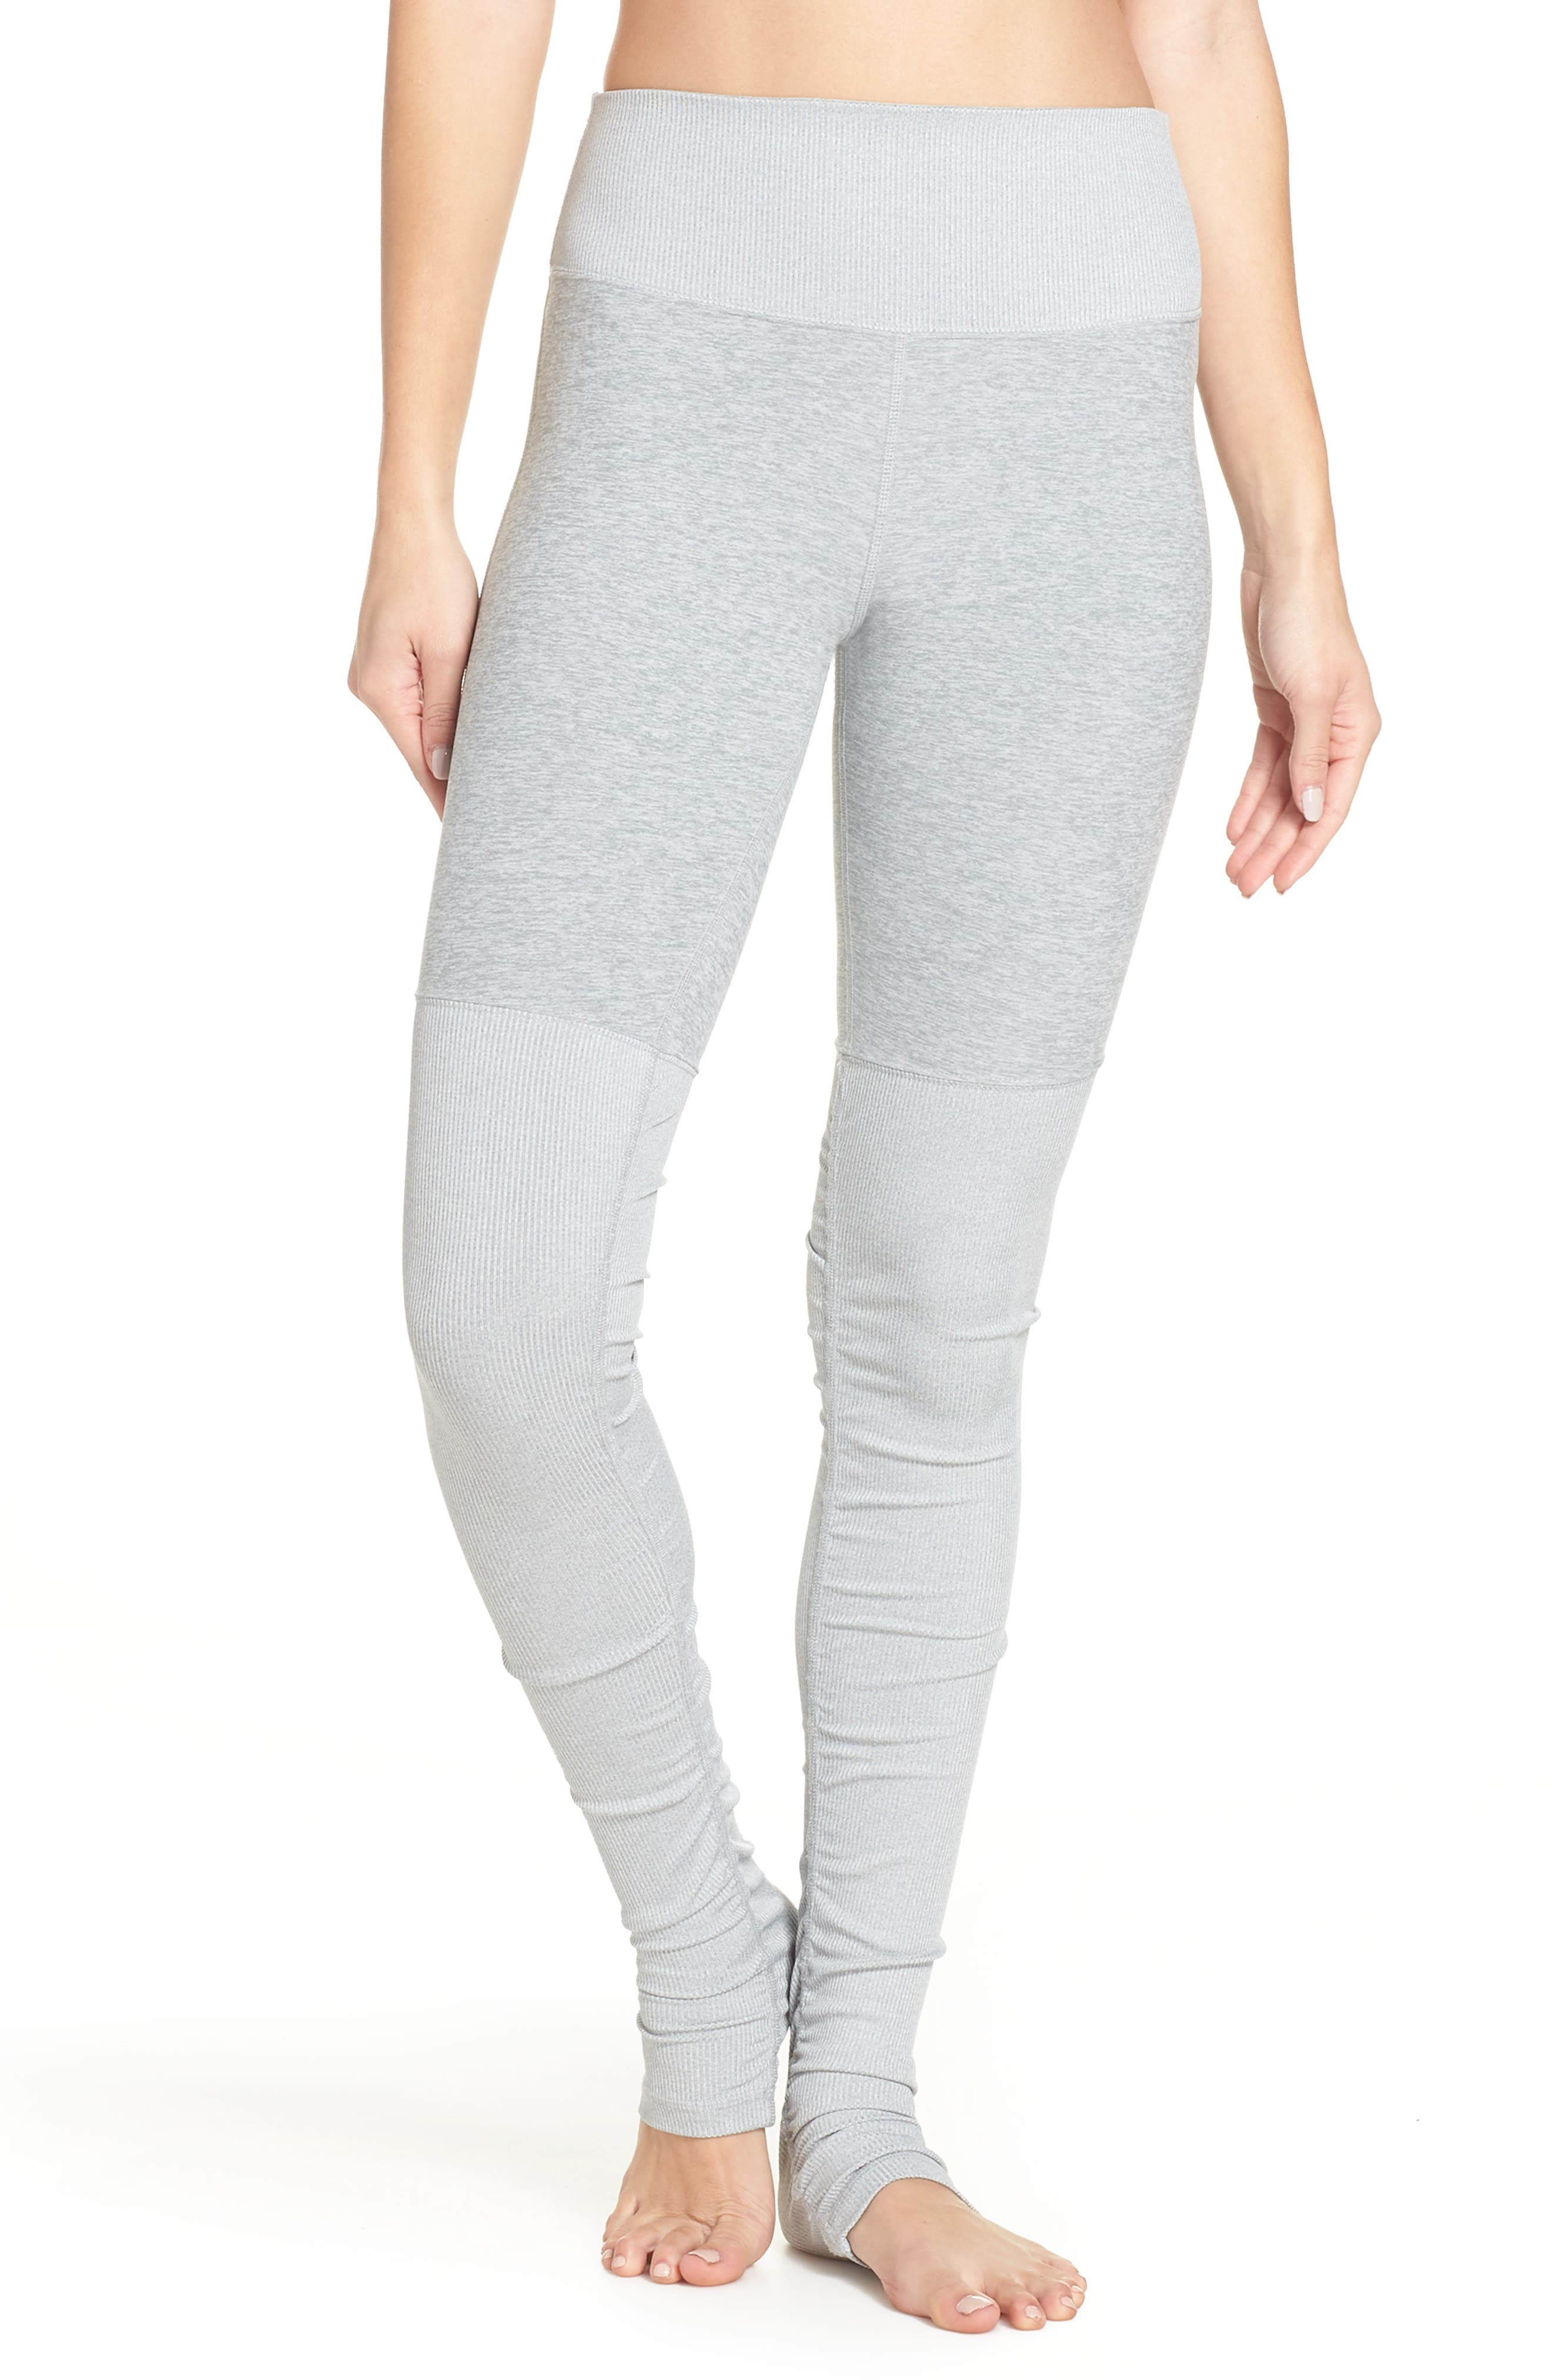 ALO Alosoft Goddess Leggings, Main, color, ZINC HEATHER